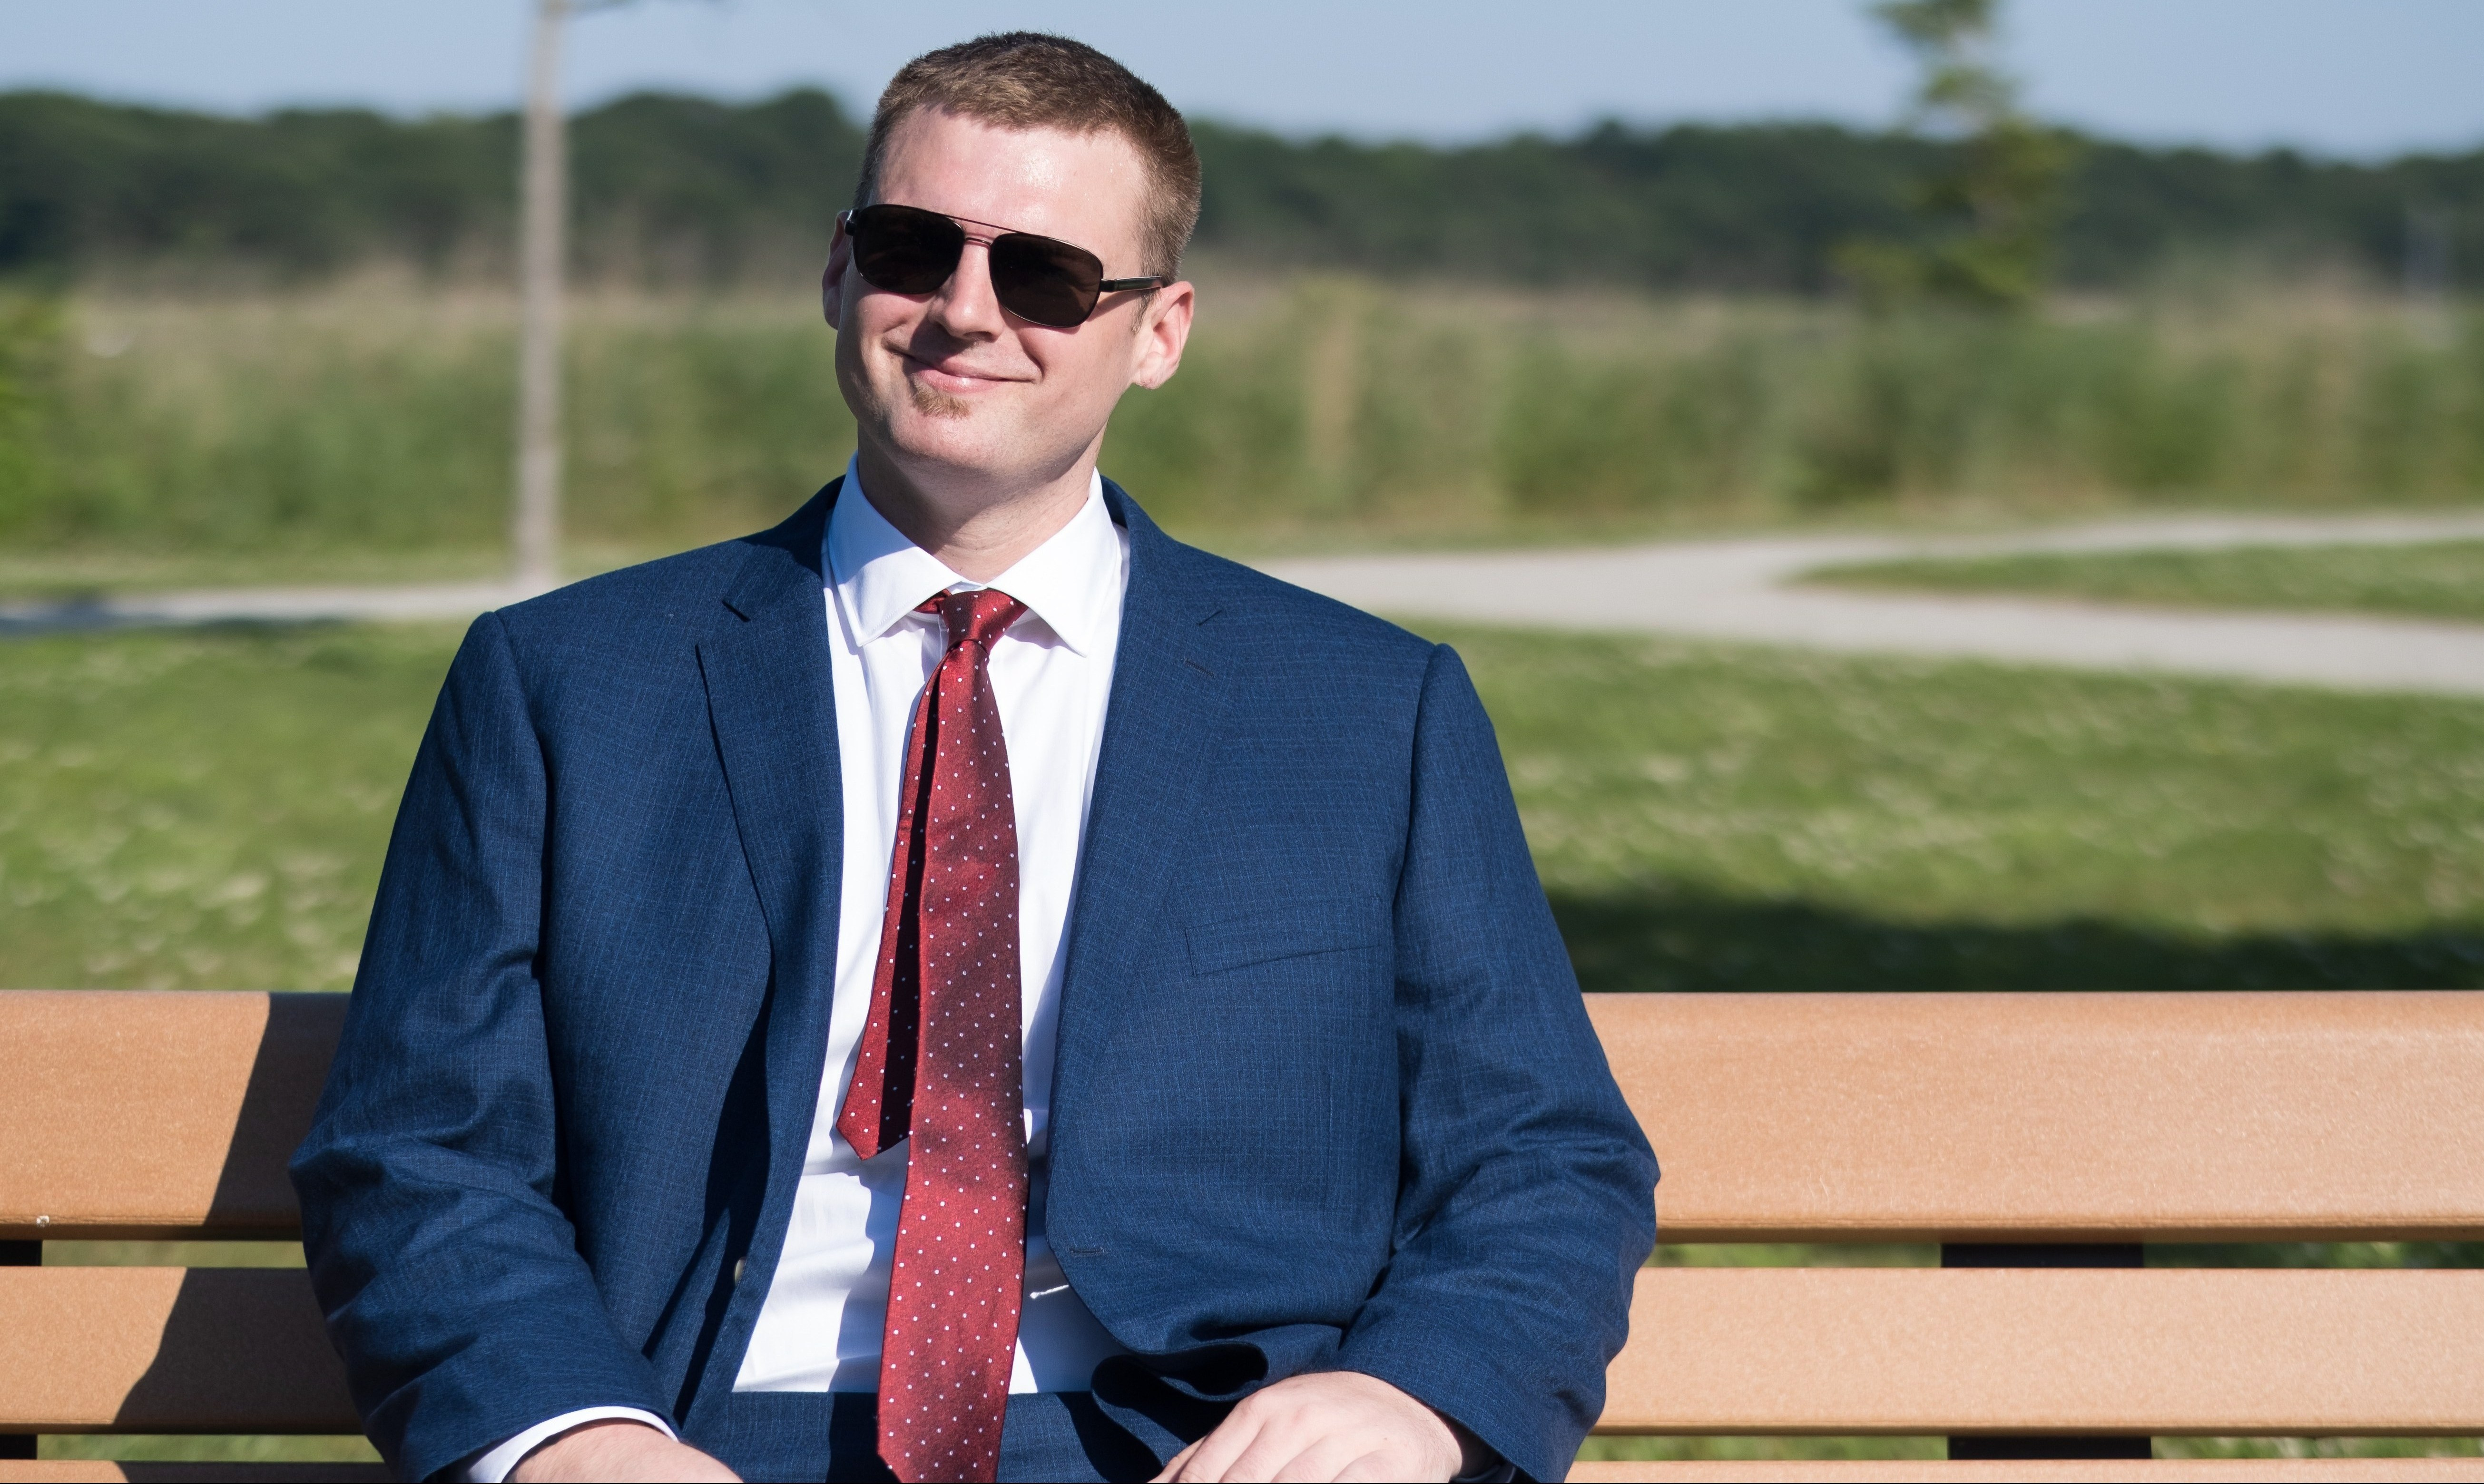 Ed sits on a bench in Webb Park in North Weymouth. Tall grass is visible in the distance, and the sky is clear and blue overhead. He's wearing a blue suit jacket, a red tie, and sunglasses, and smiling.